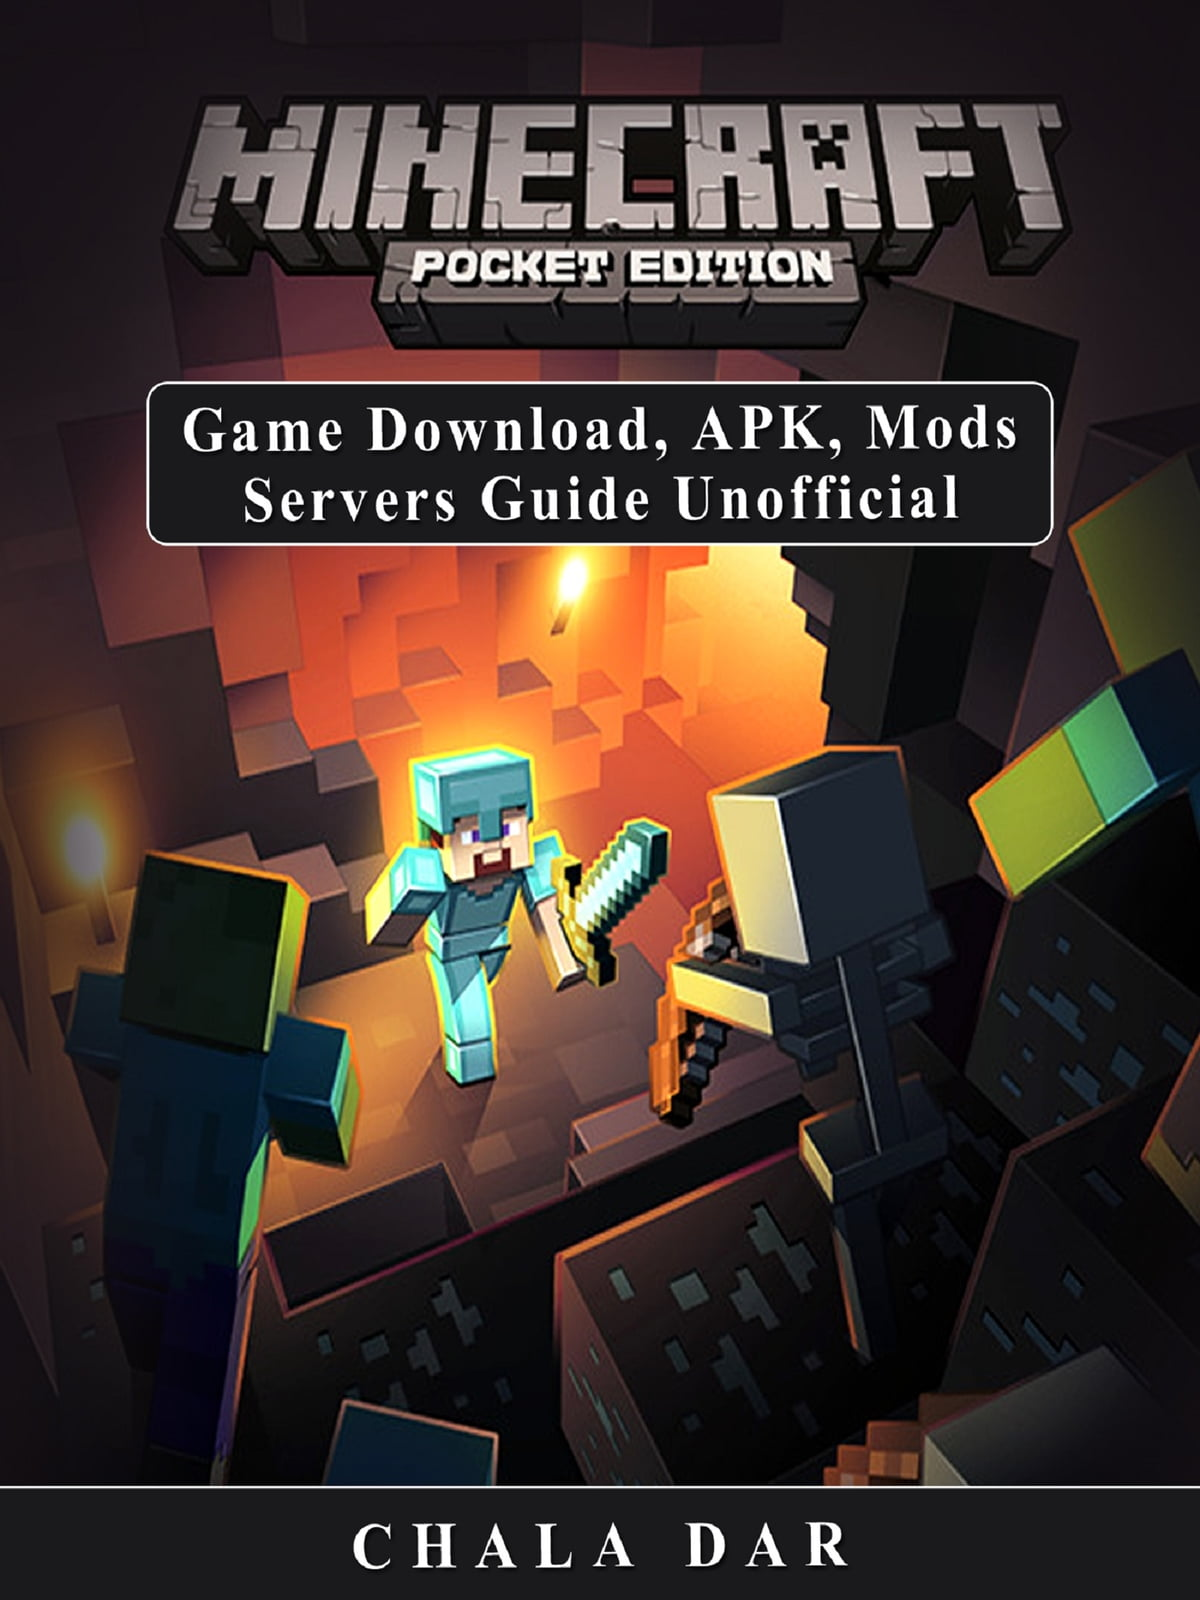 Minecraft Pocket Edition Game Download Apk Mods Servers Guide Unofficial Ebook By Chala Dar 9781387159413 Rakuten Kobo United States